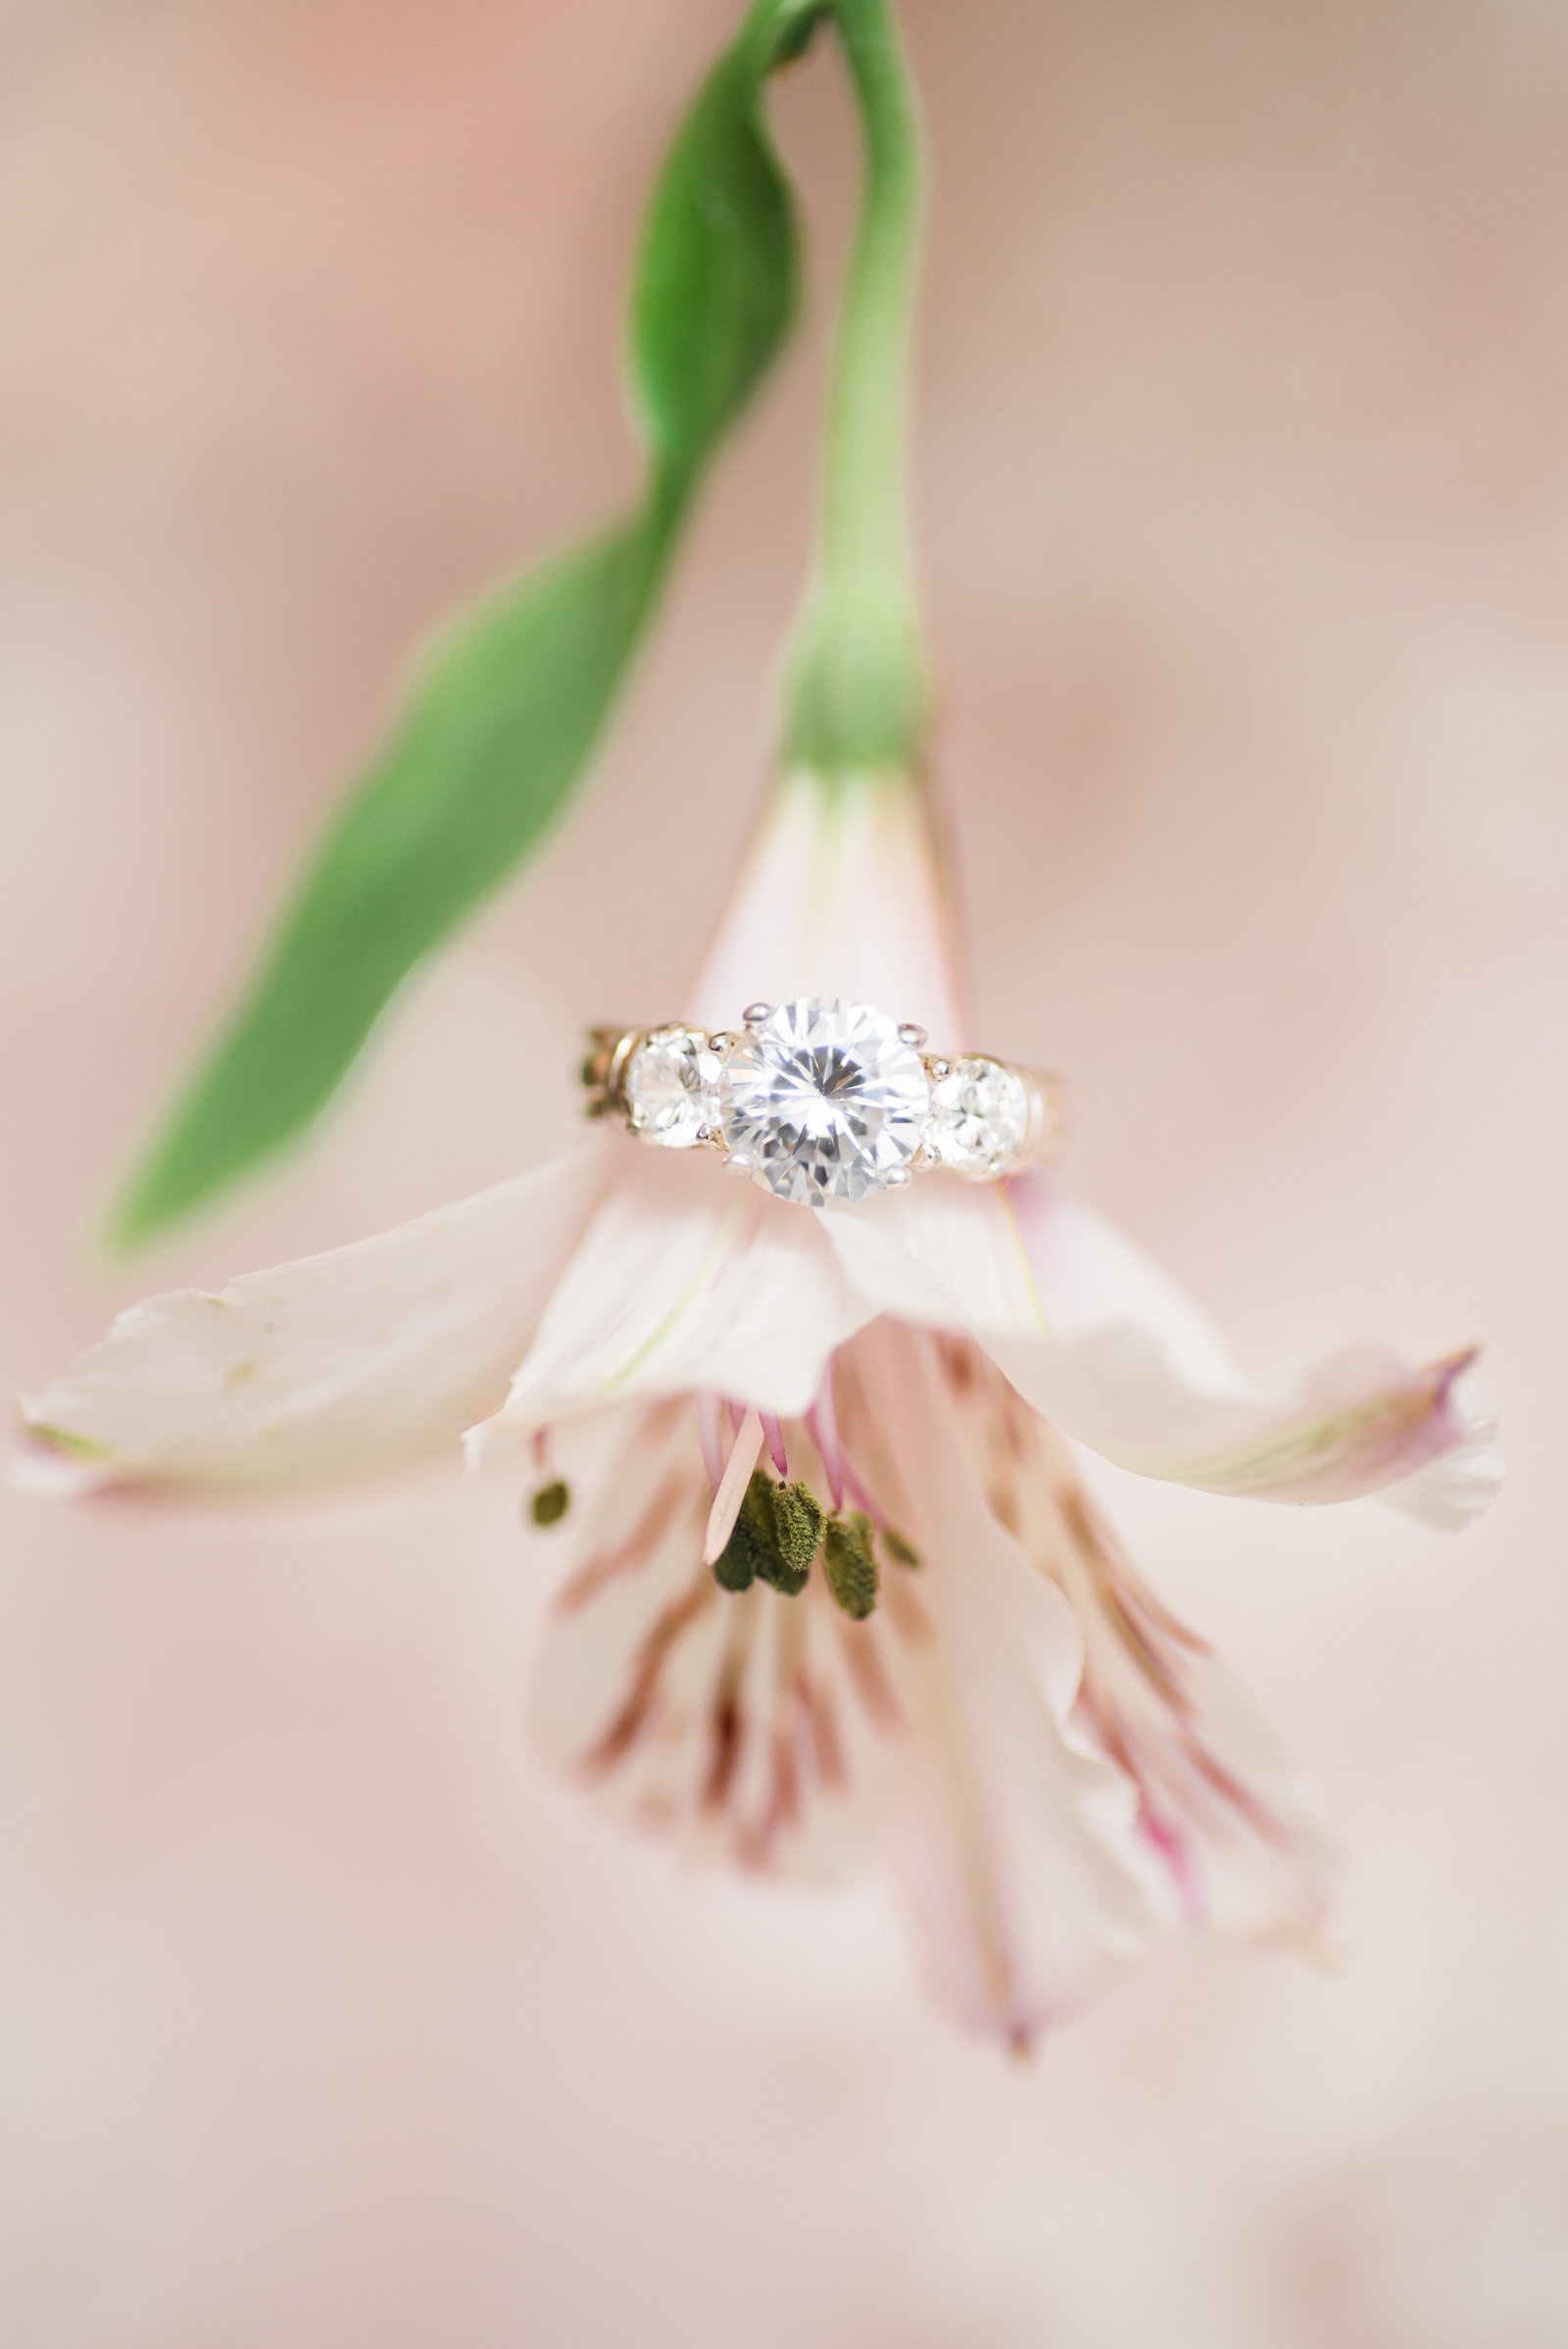 Tucson La Mariposa Wedding Photo of Engagement Ring on a Pink Carnation Flower | Tucson Wedding Photographer | West End Photography